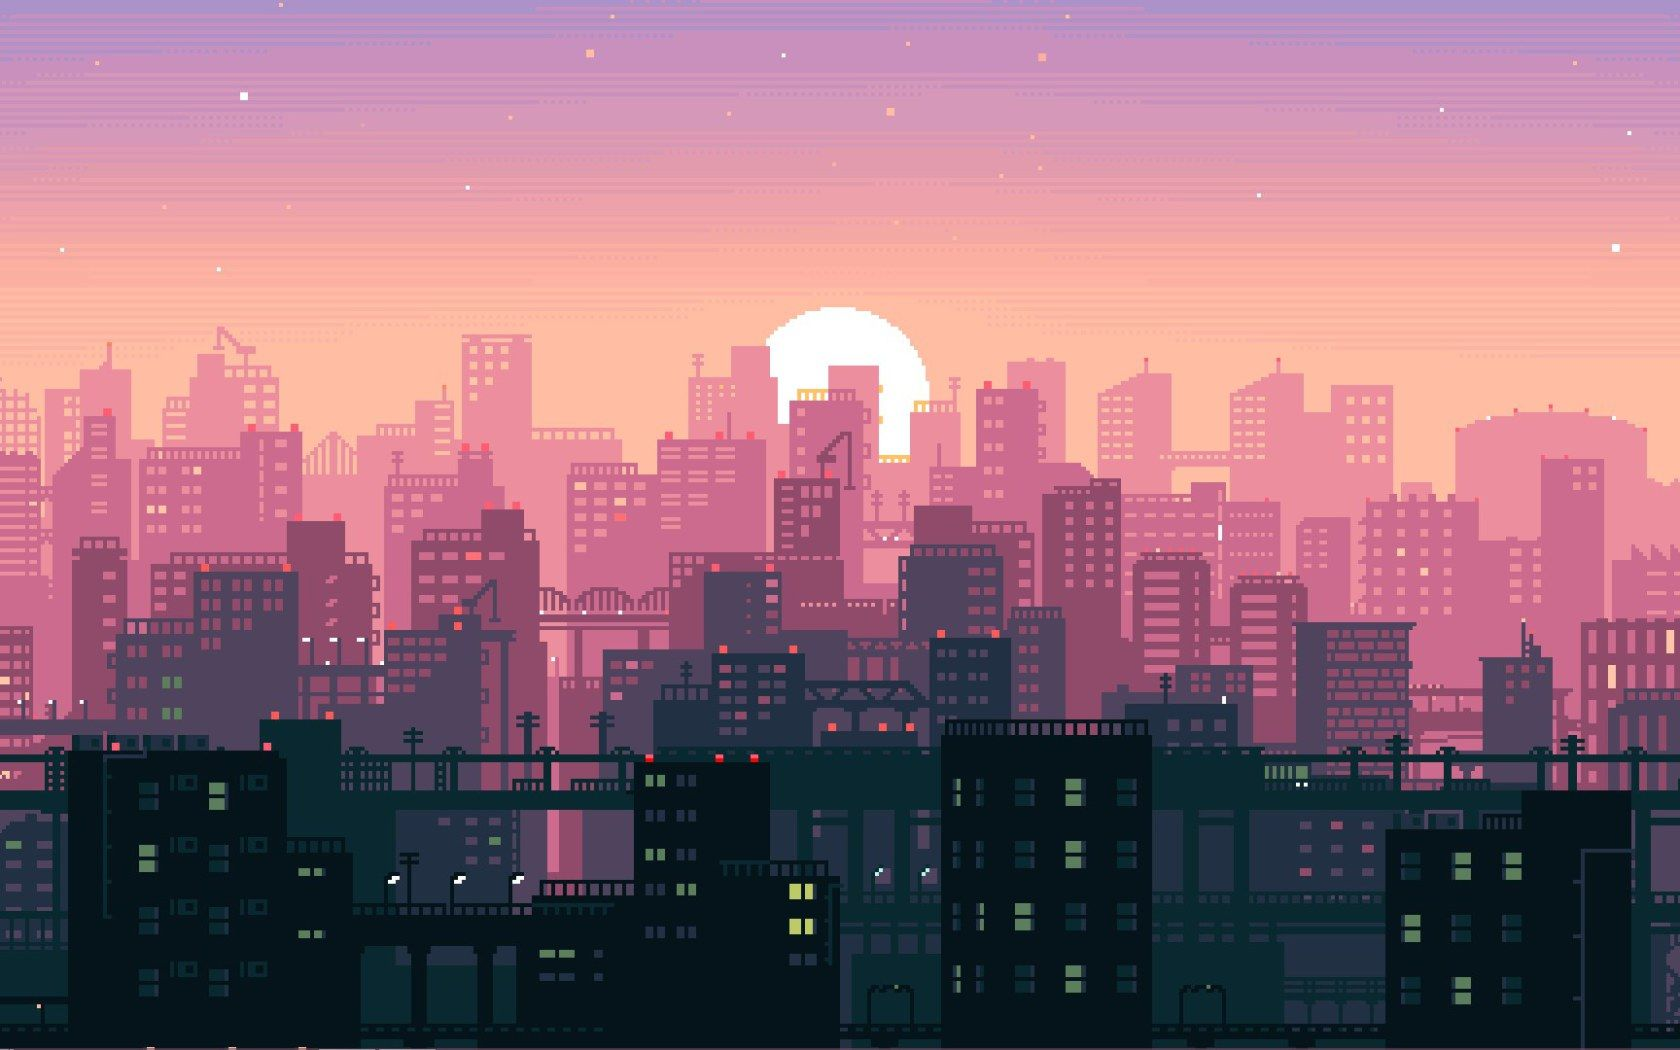 Pink Aesthetic PC Anime Wallpapers - Wallpaper Cave